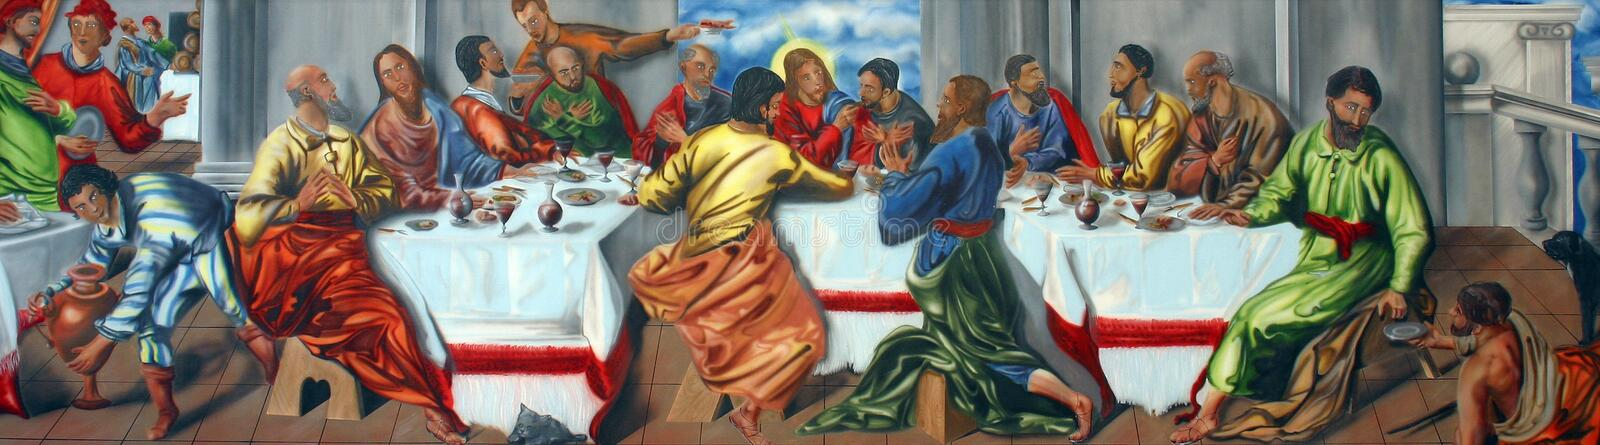 Last Supper. Of Jesus Christ royalty free stock images